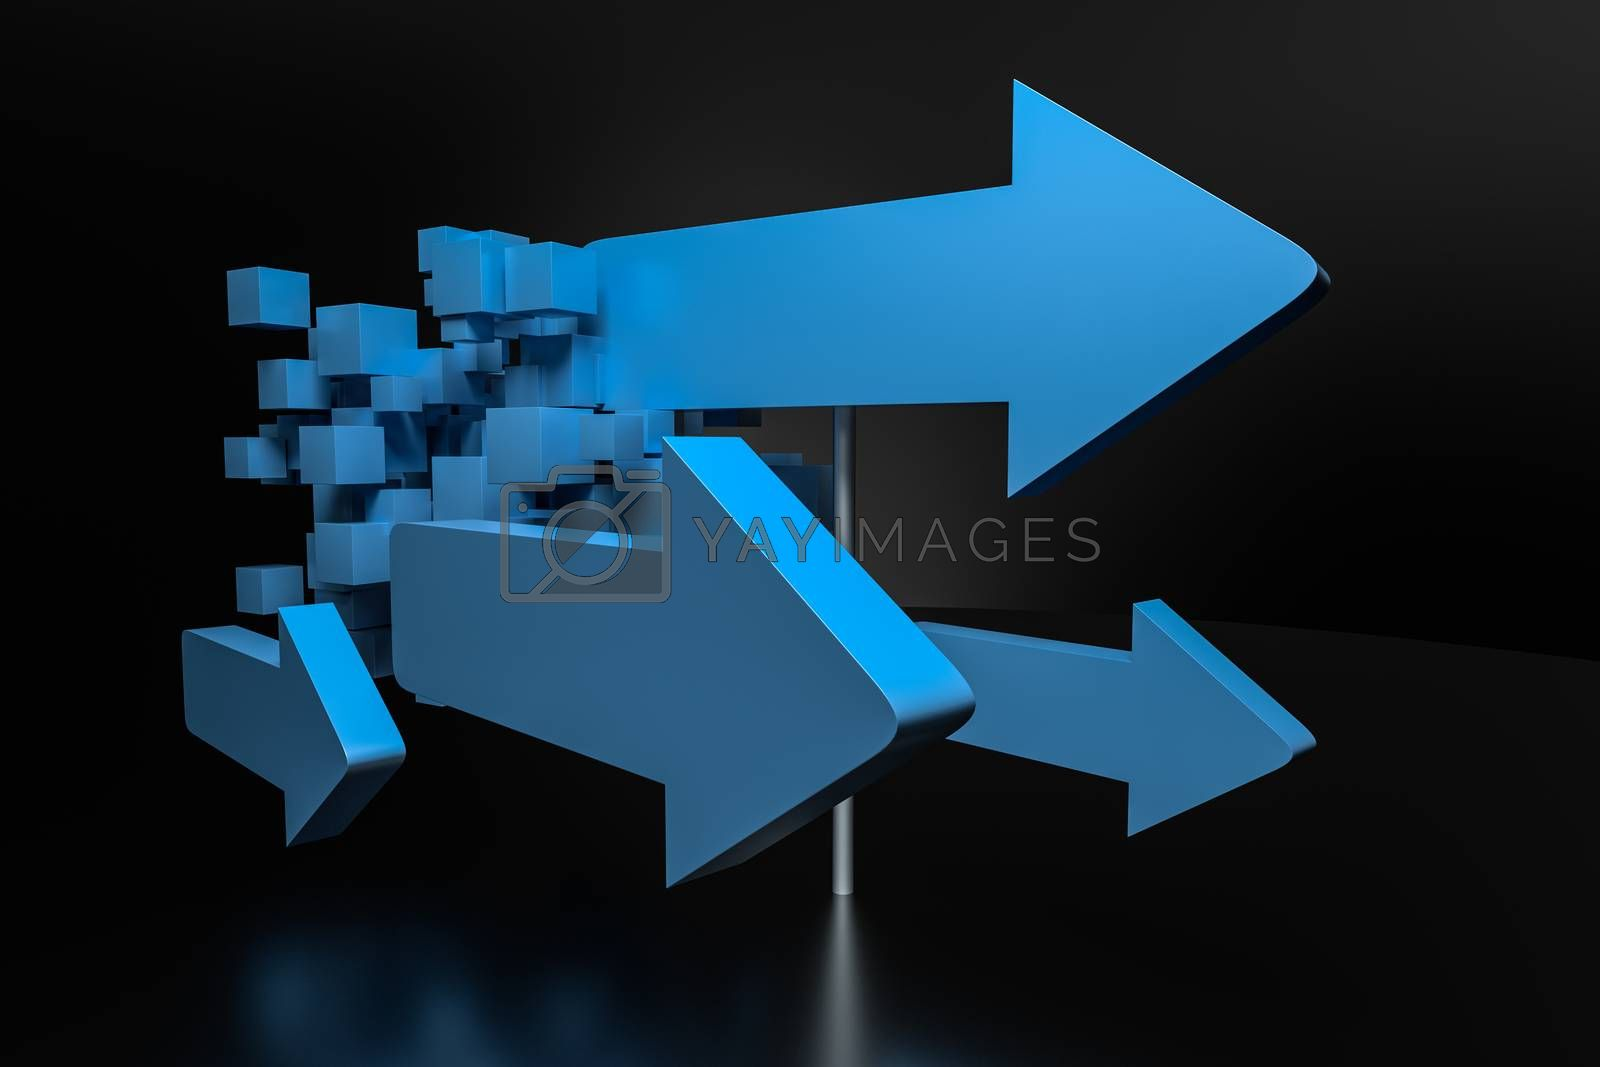 3d rendering, 3d model of arrow, the concept of development and direction by vinkfan